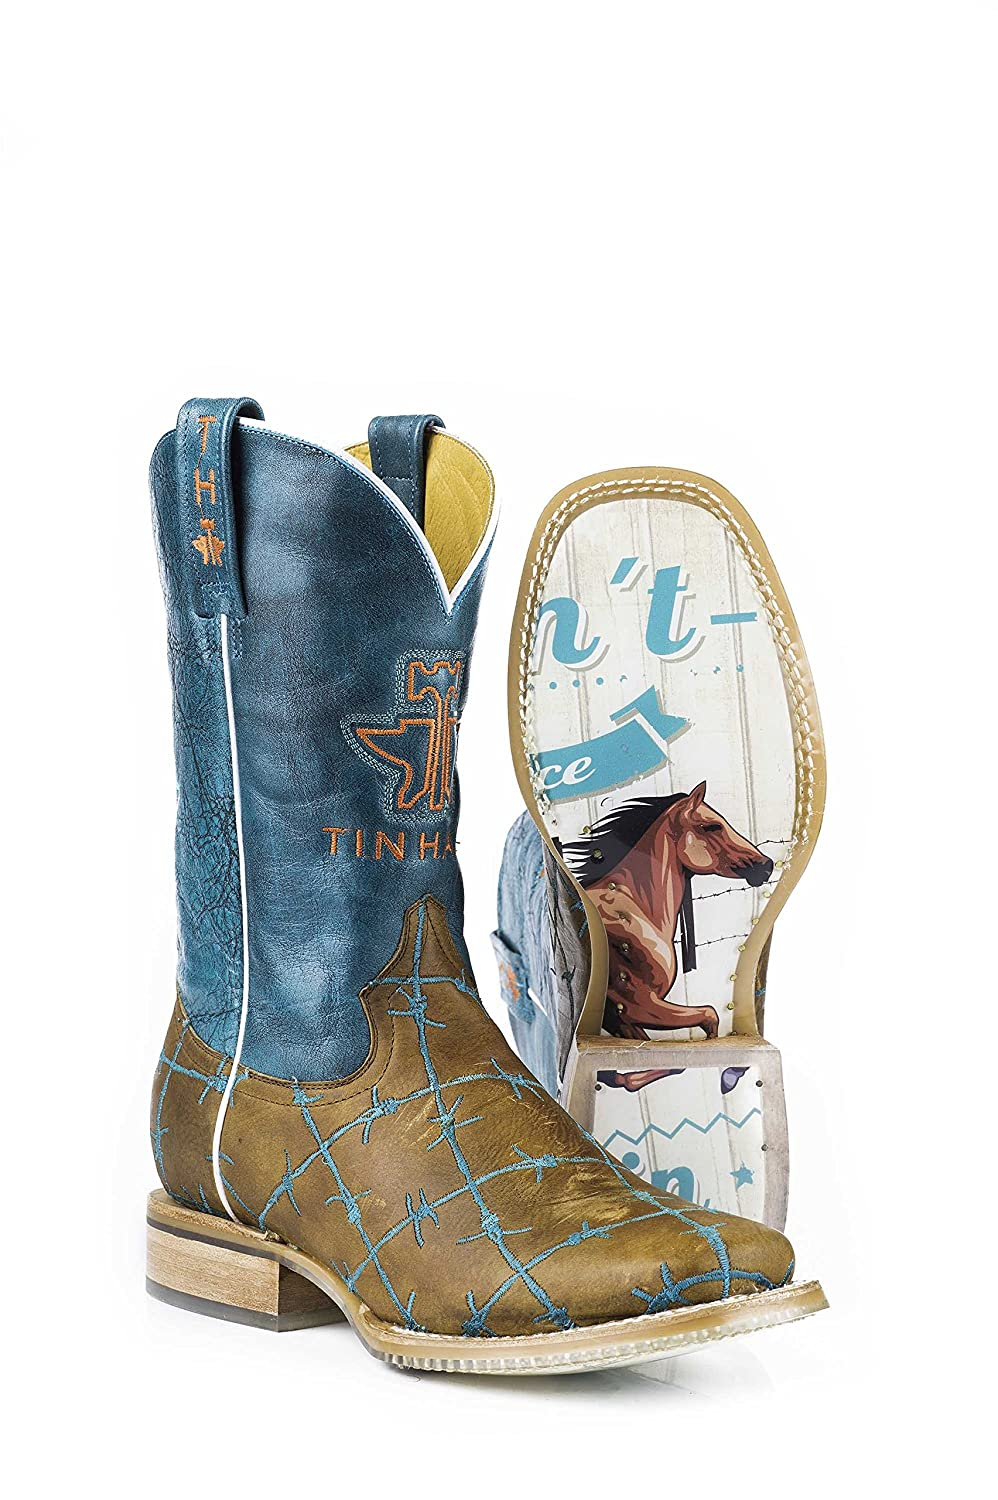 Tin Haul Shoes Women's Barb'd Wire Western Boot B00U05TZOW 8.5 B(M) US|Brown/Turquoise